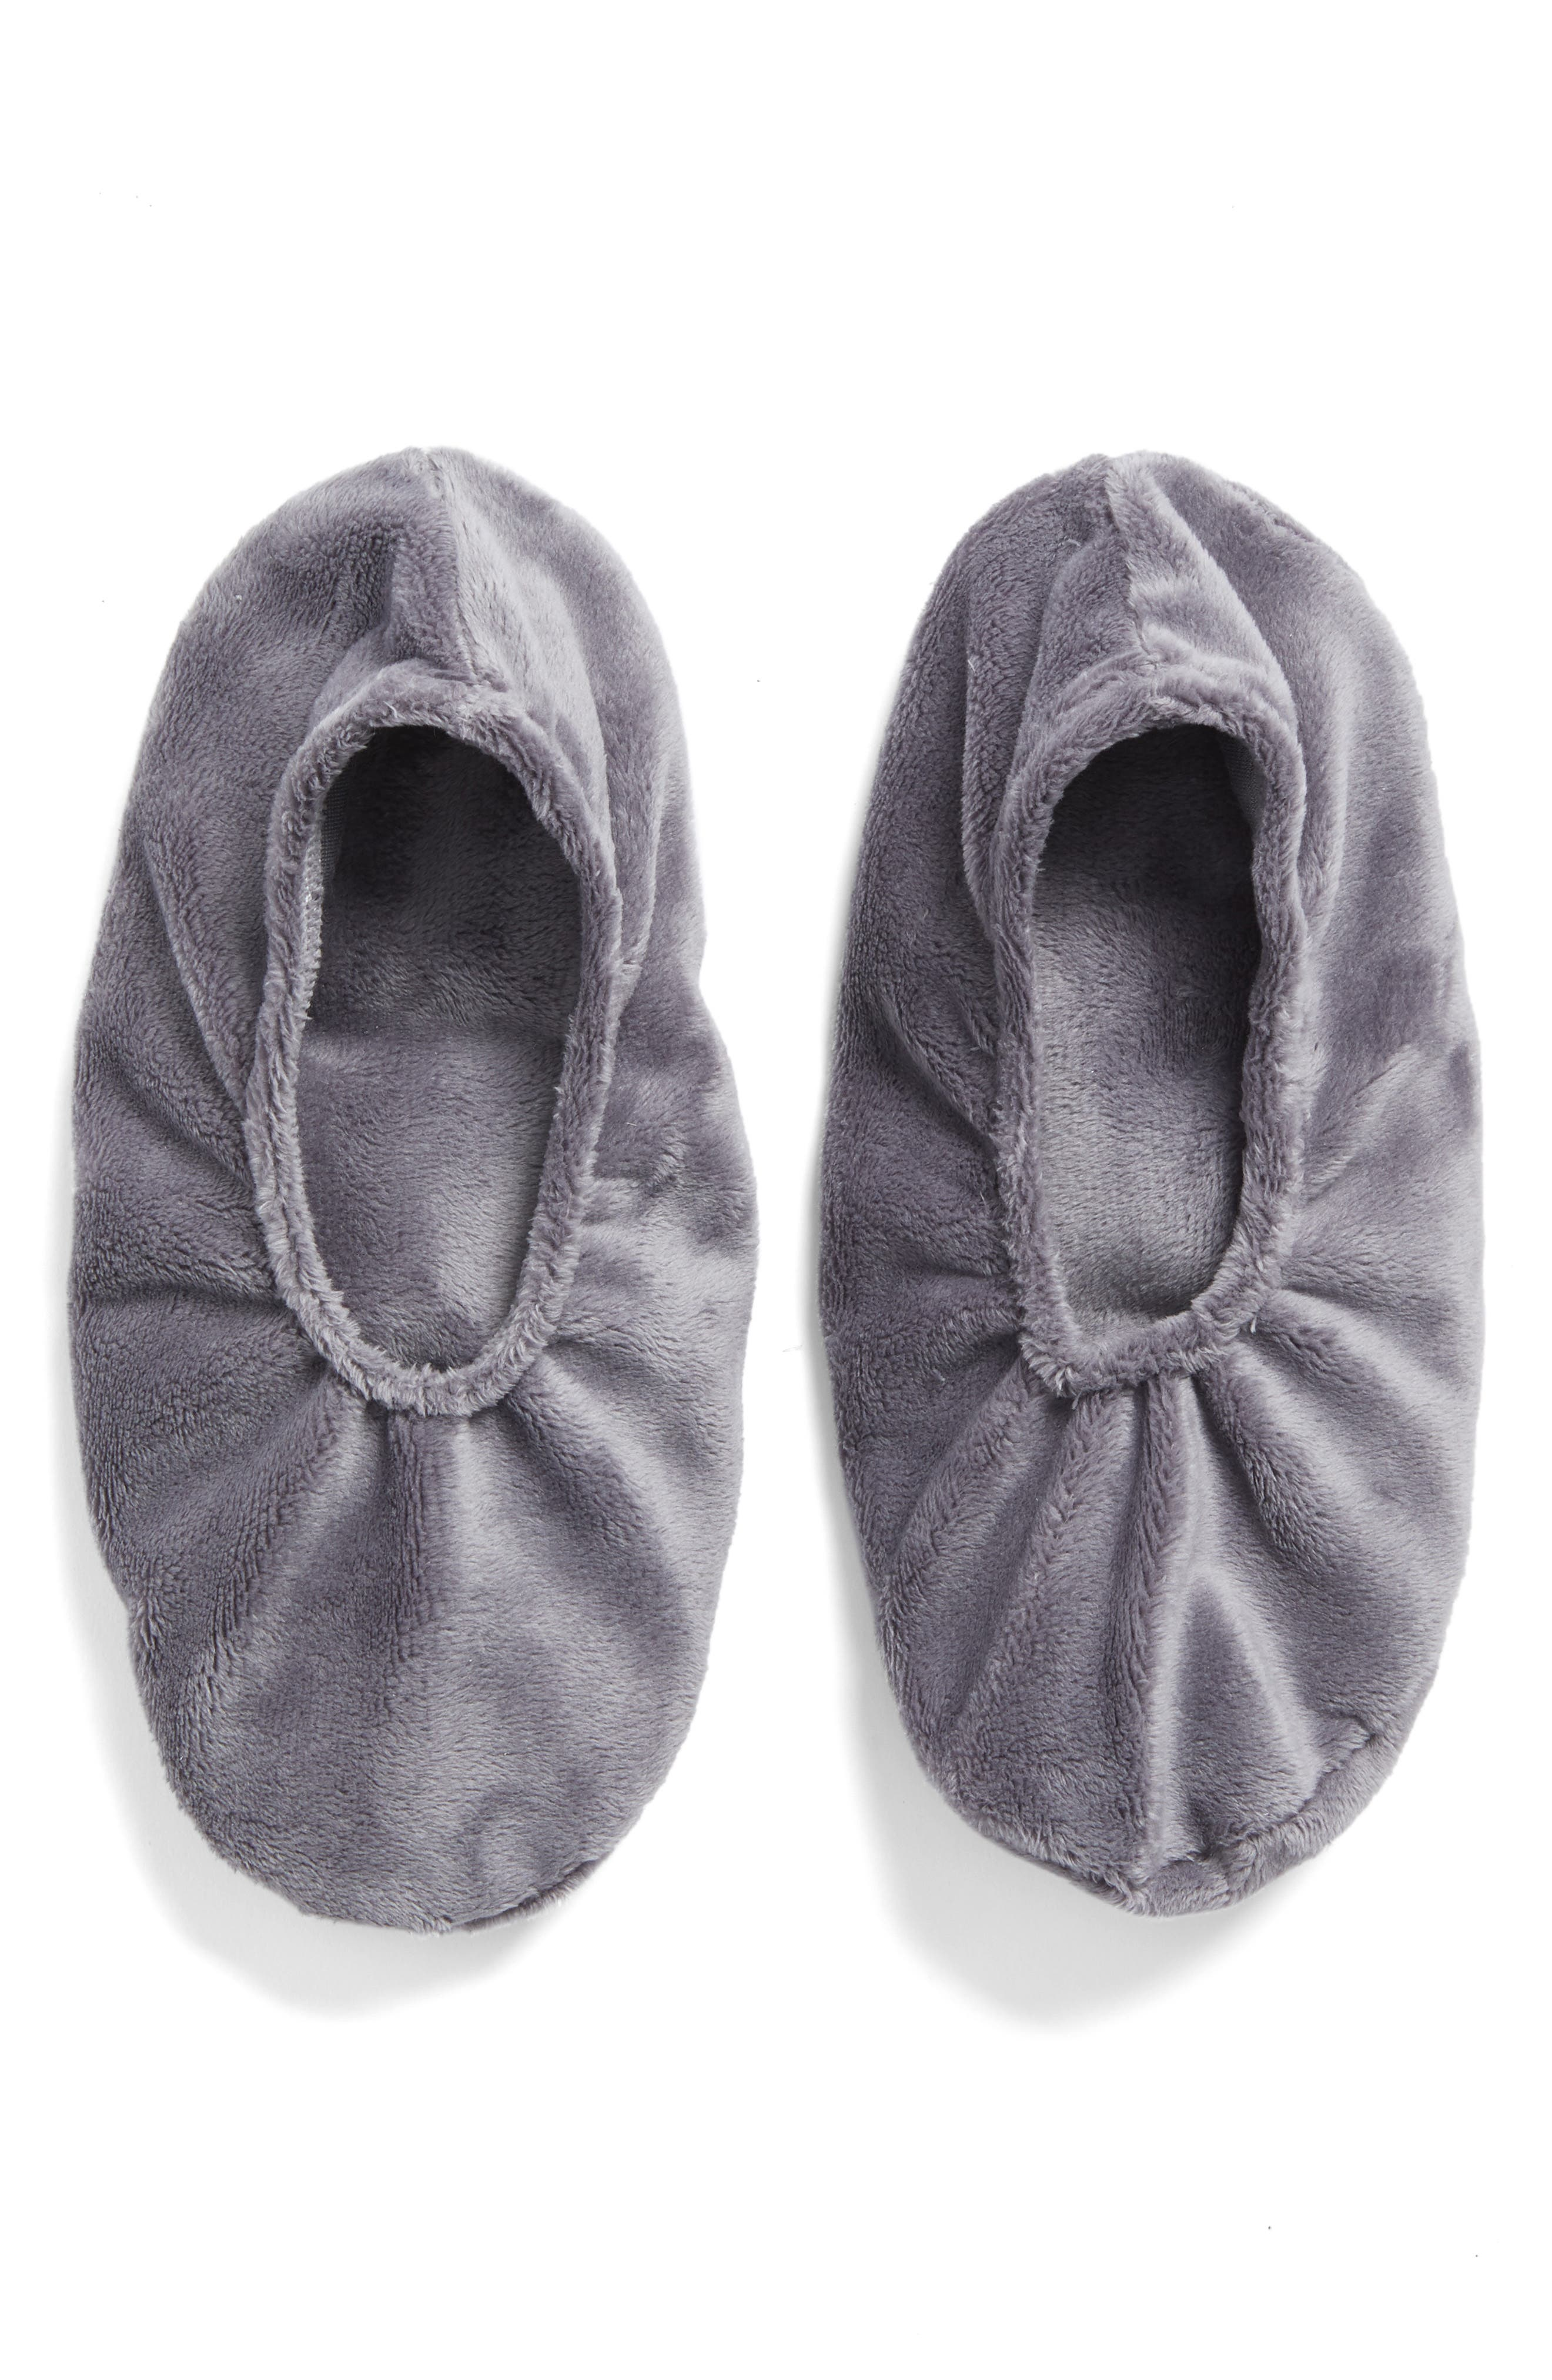 Alternate Image 1 Selected - Sonoma Lavender Solid Charcoal Grey Footies (Nordstrom Exclusive) ($38 Value)